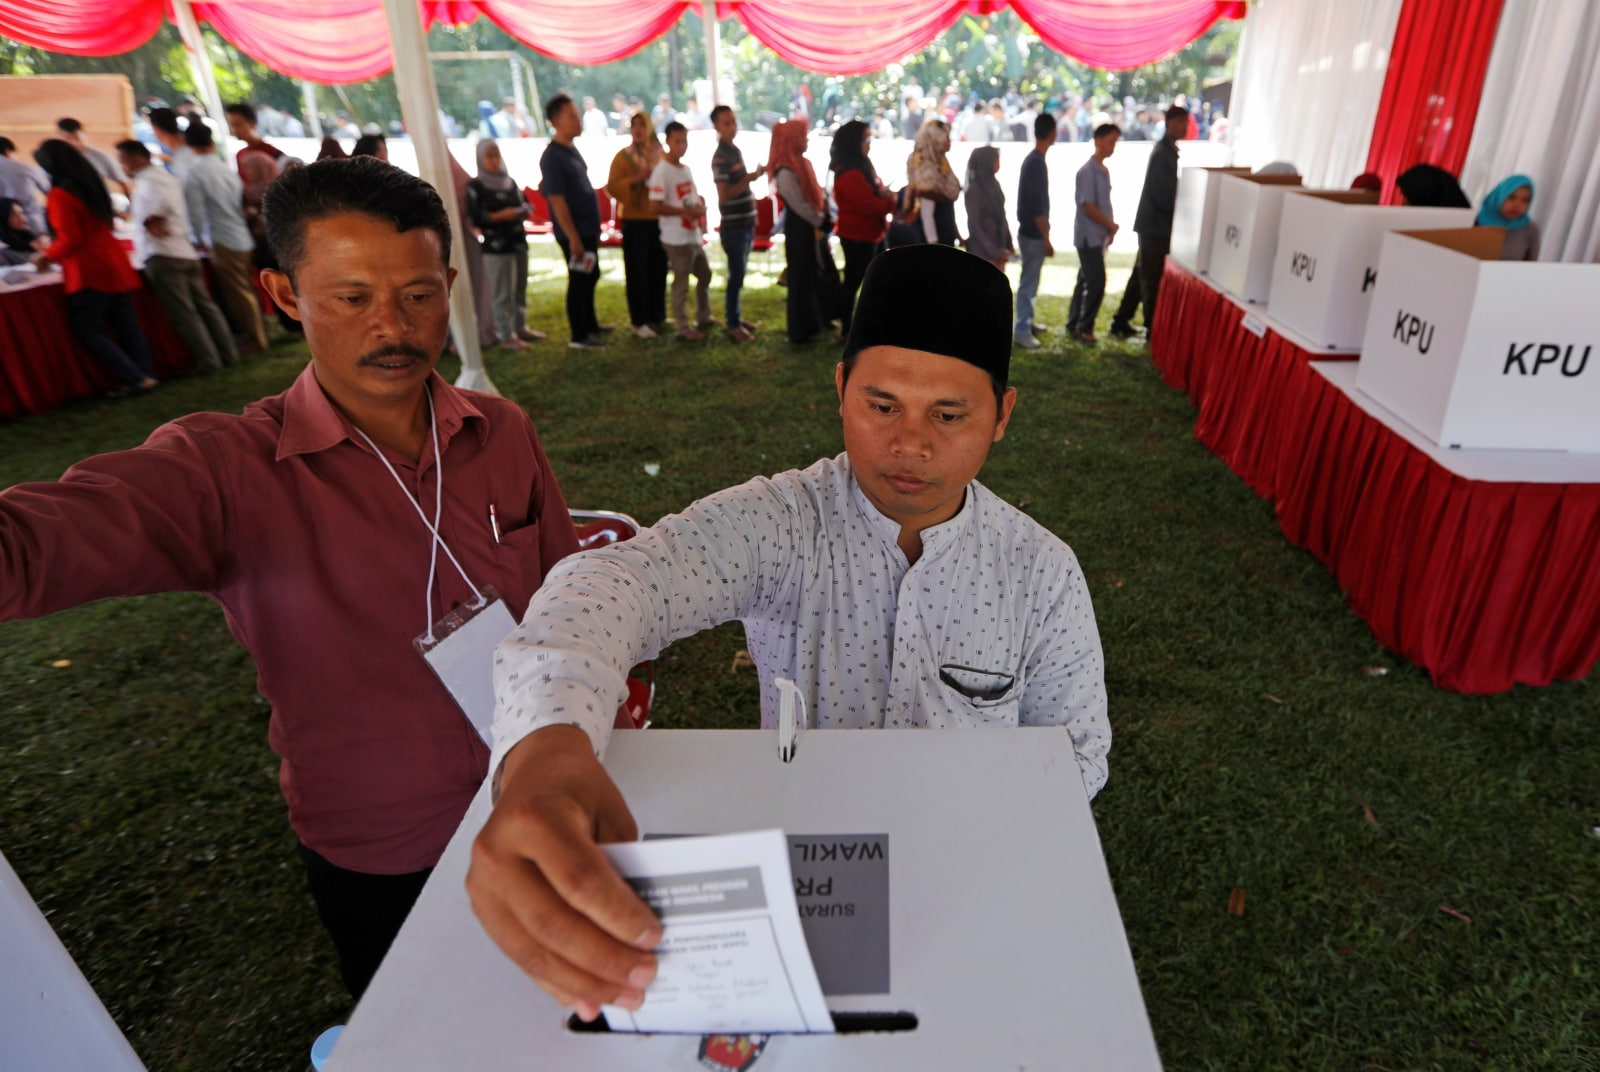 A voter casts his ballot at a polling booth during elections in Bogor, West Java, Indonesia April 17, 2019. REUTERS/Willy Kurniawan